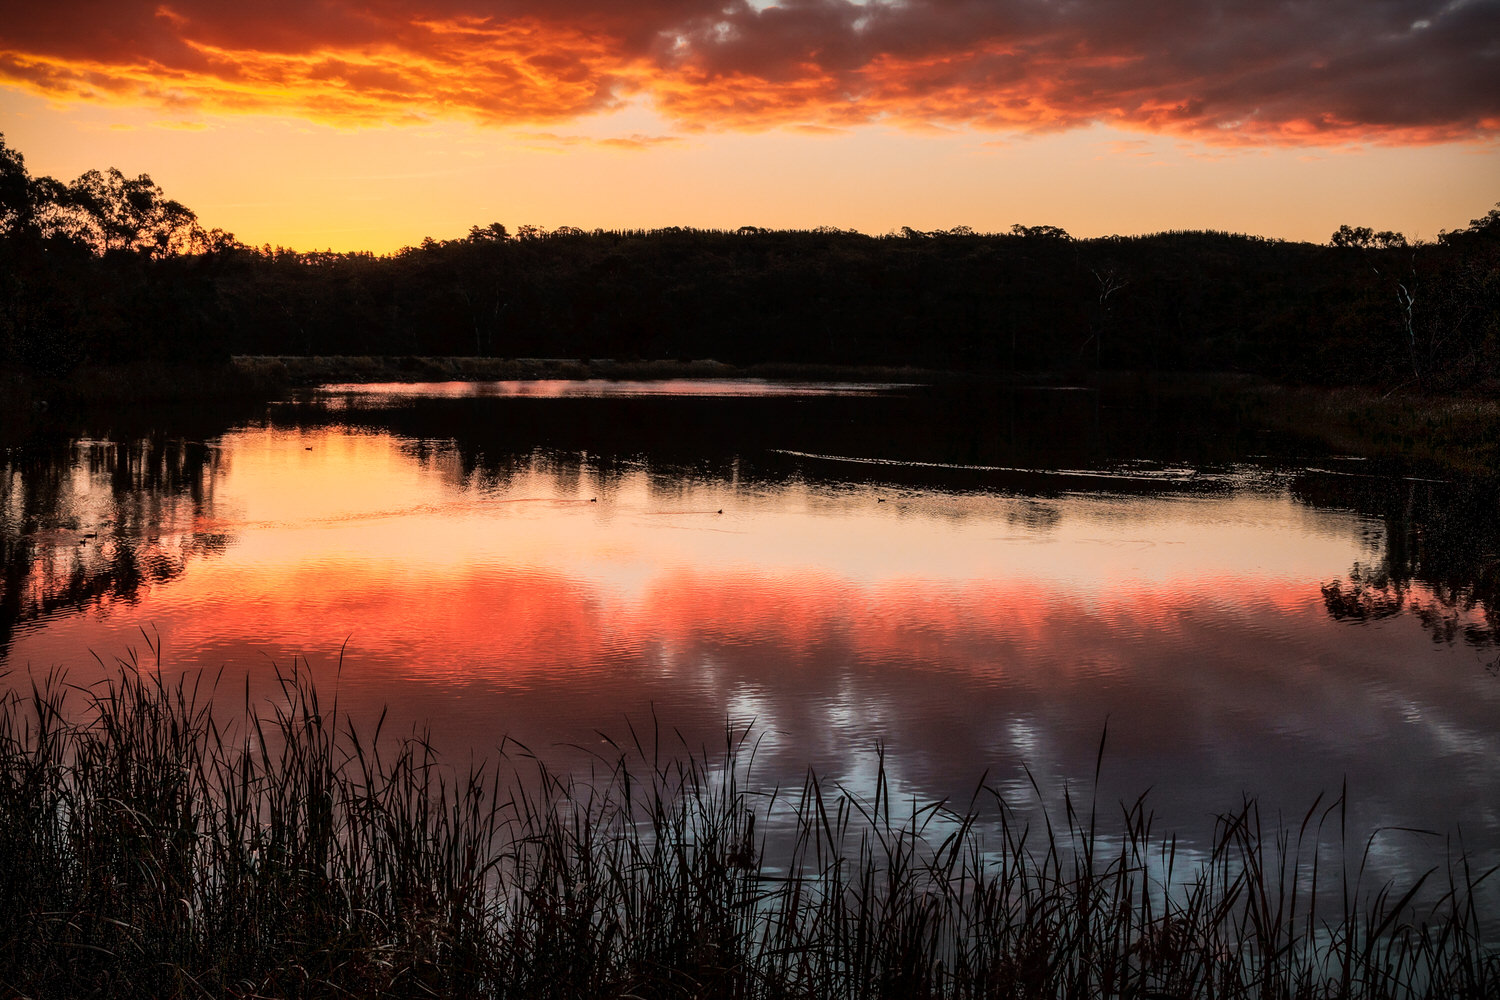 Red and orange colors dominate this    backlit sunset    scene at    Expedition Pass Reservoir    near    Chewton    in Central Victoria, Australia.